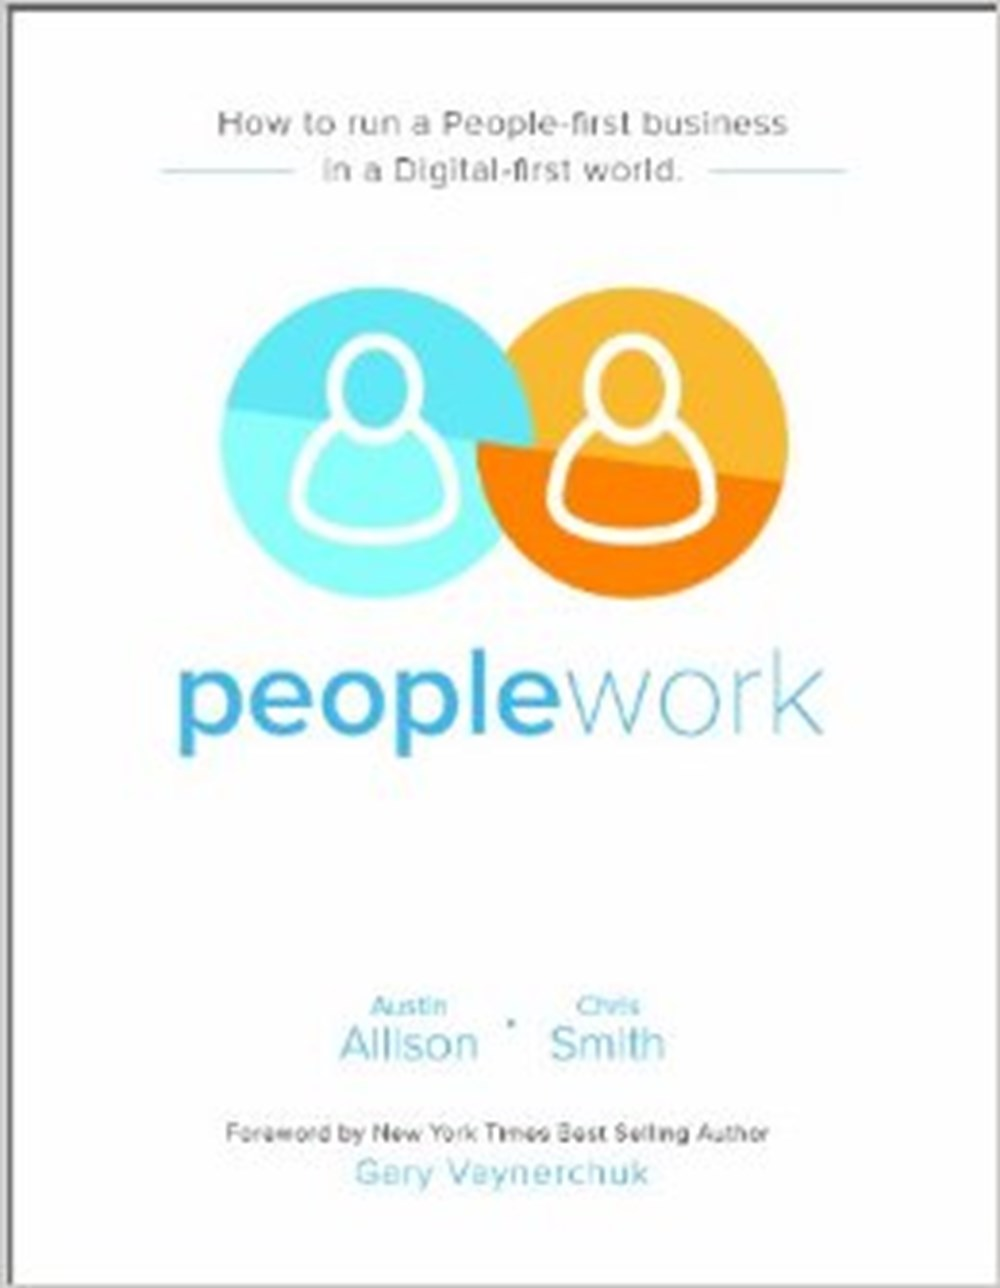 Peoplework How to Run a People-first Business in a Digital-first World